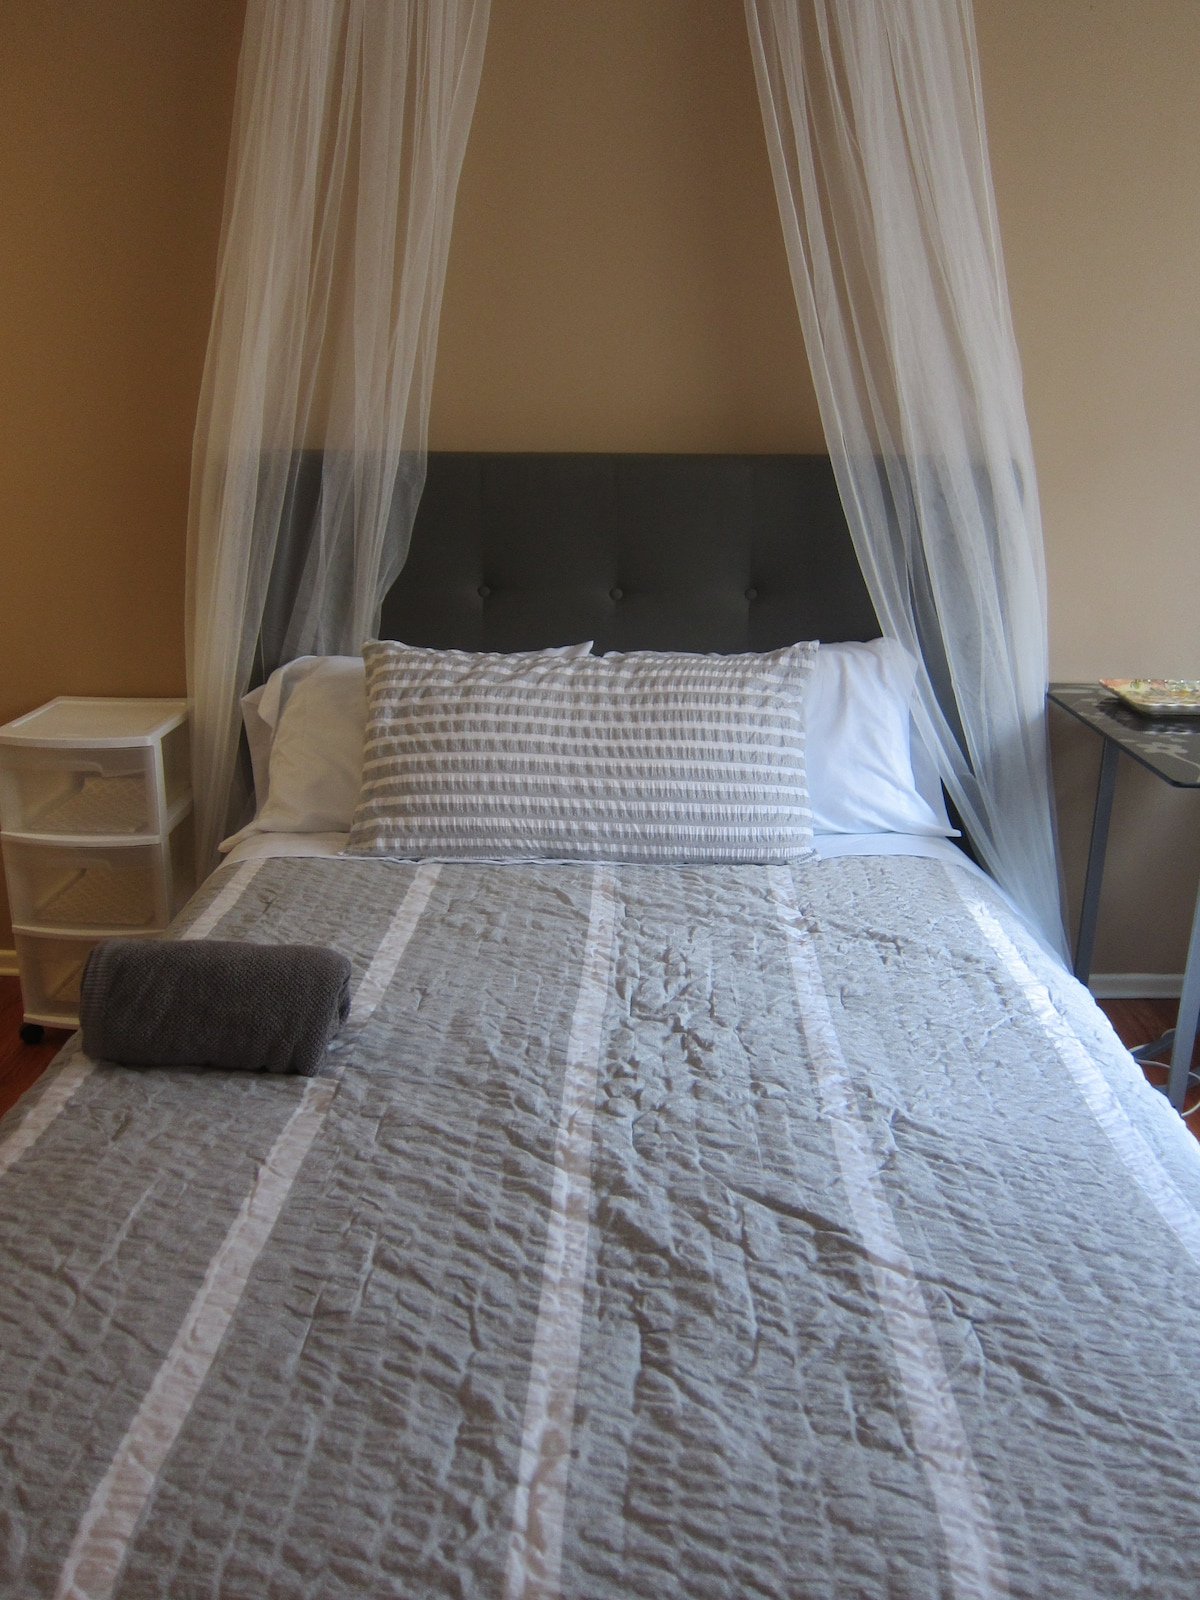 This is the new redone master bedroom